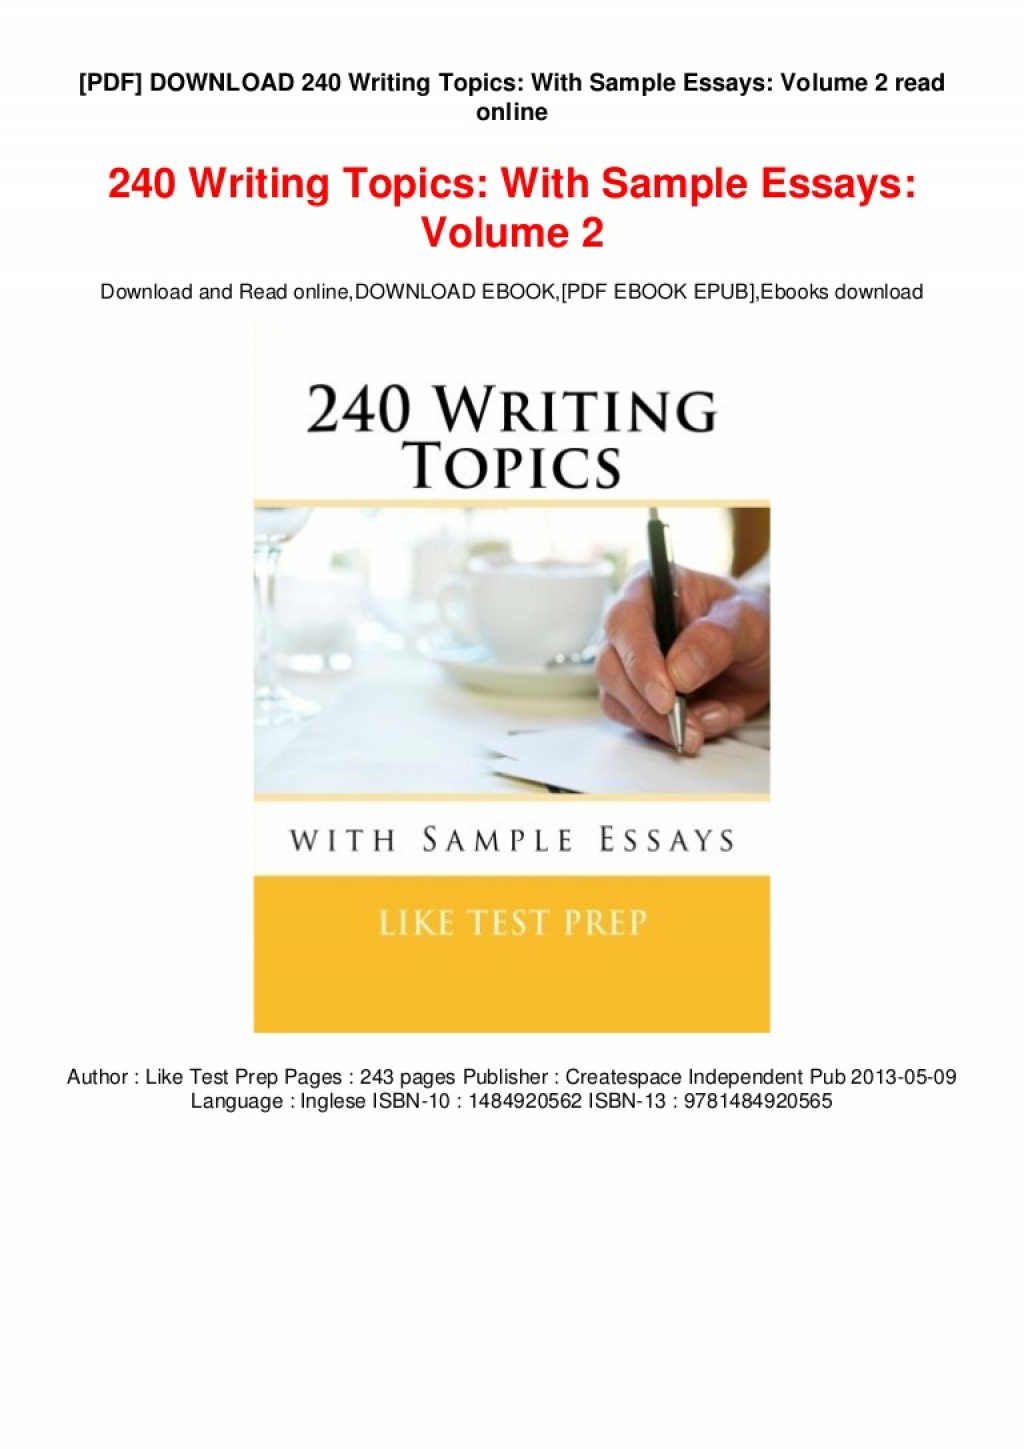 024 Essays Online To Read Pdf Download Writing Topics With Sample Volume Thumbnail Essay Remarkable Short Best Large